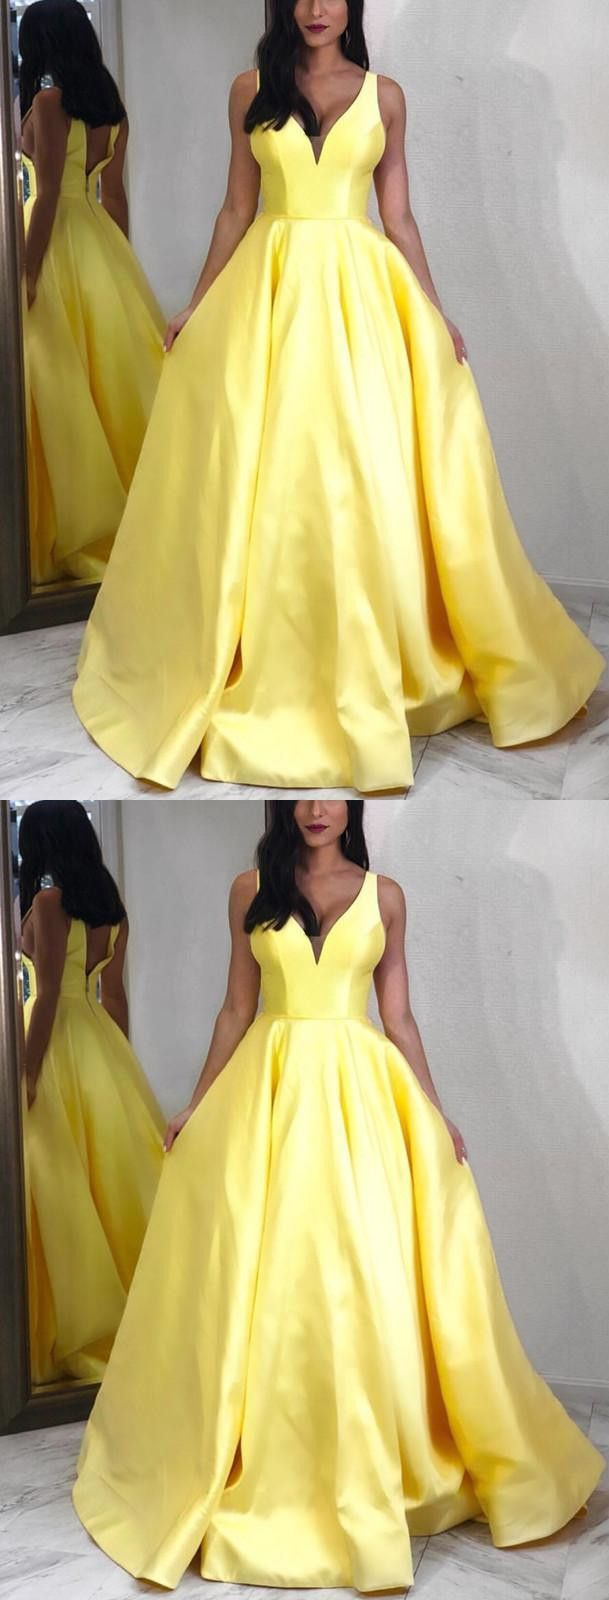 Yellow Prom Dress Yellow Ball Gown Ball Gown Prom Dresses Yellow Evening Gown Yellow Evening Gown Prom Dresses Ball Gown Prom Dresses Yellow [ 1600 x 609 Pixel ]